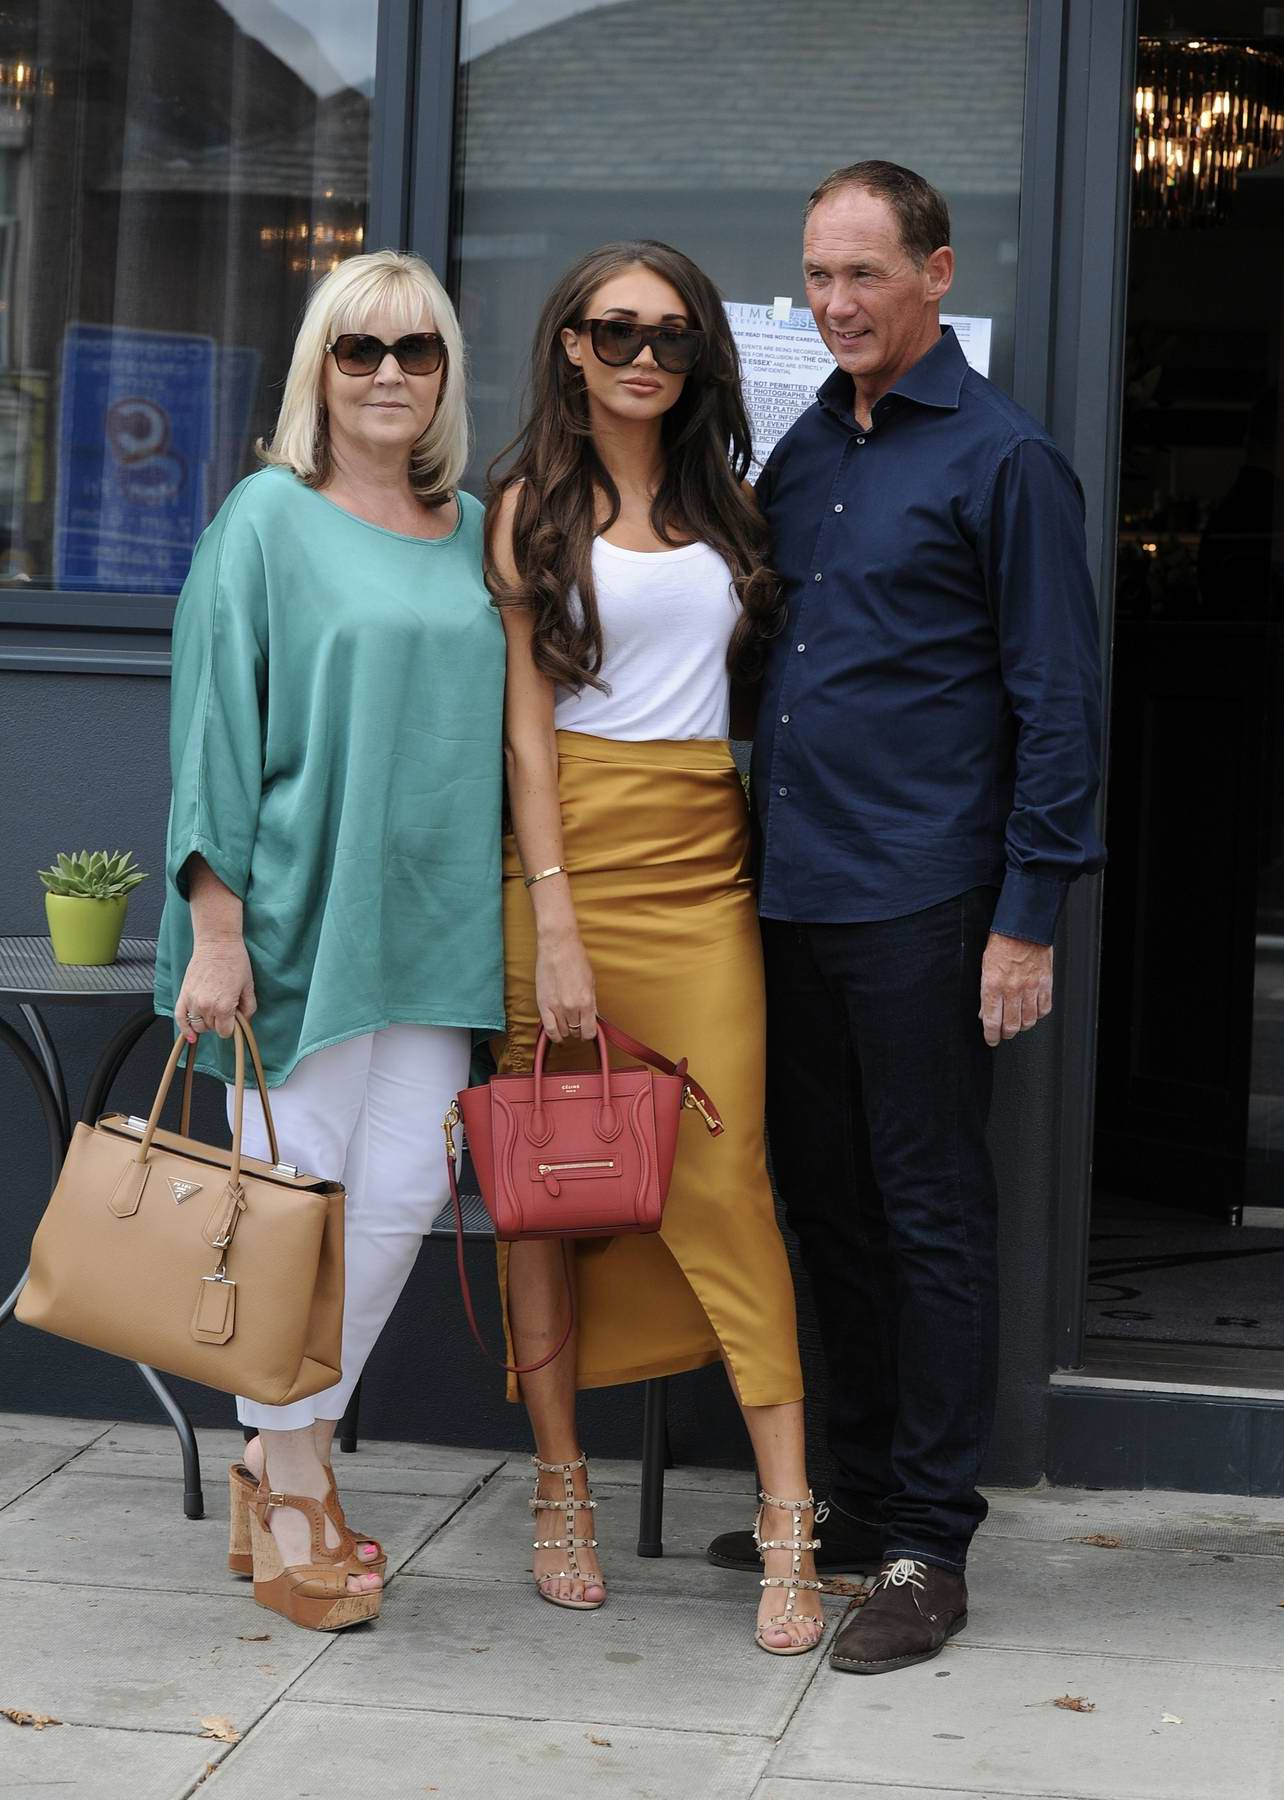 Megan McKenna out and about with her Parents in Liverpool, UK